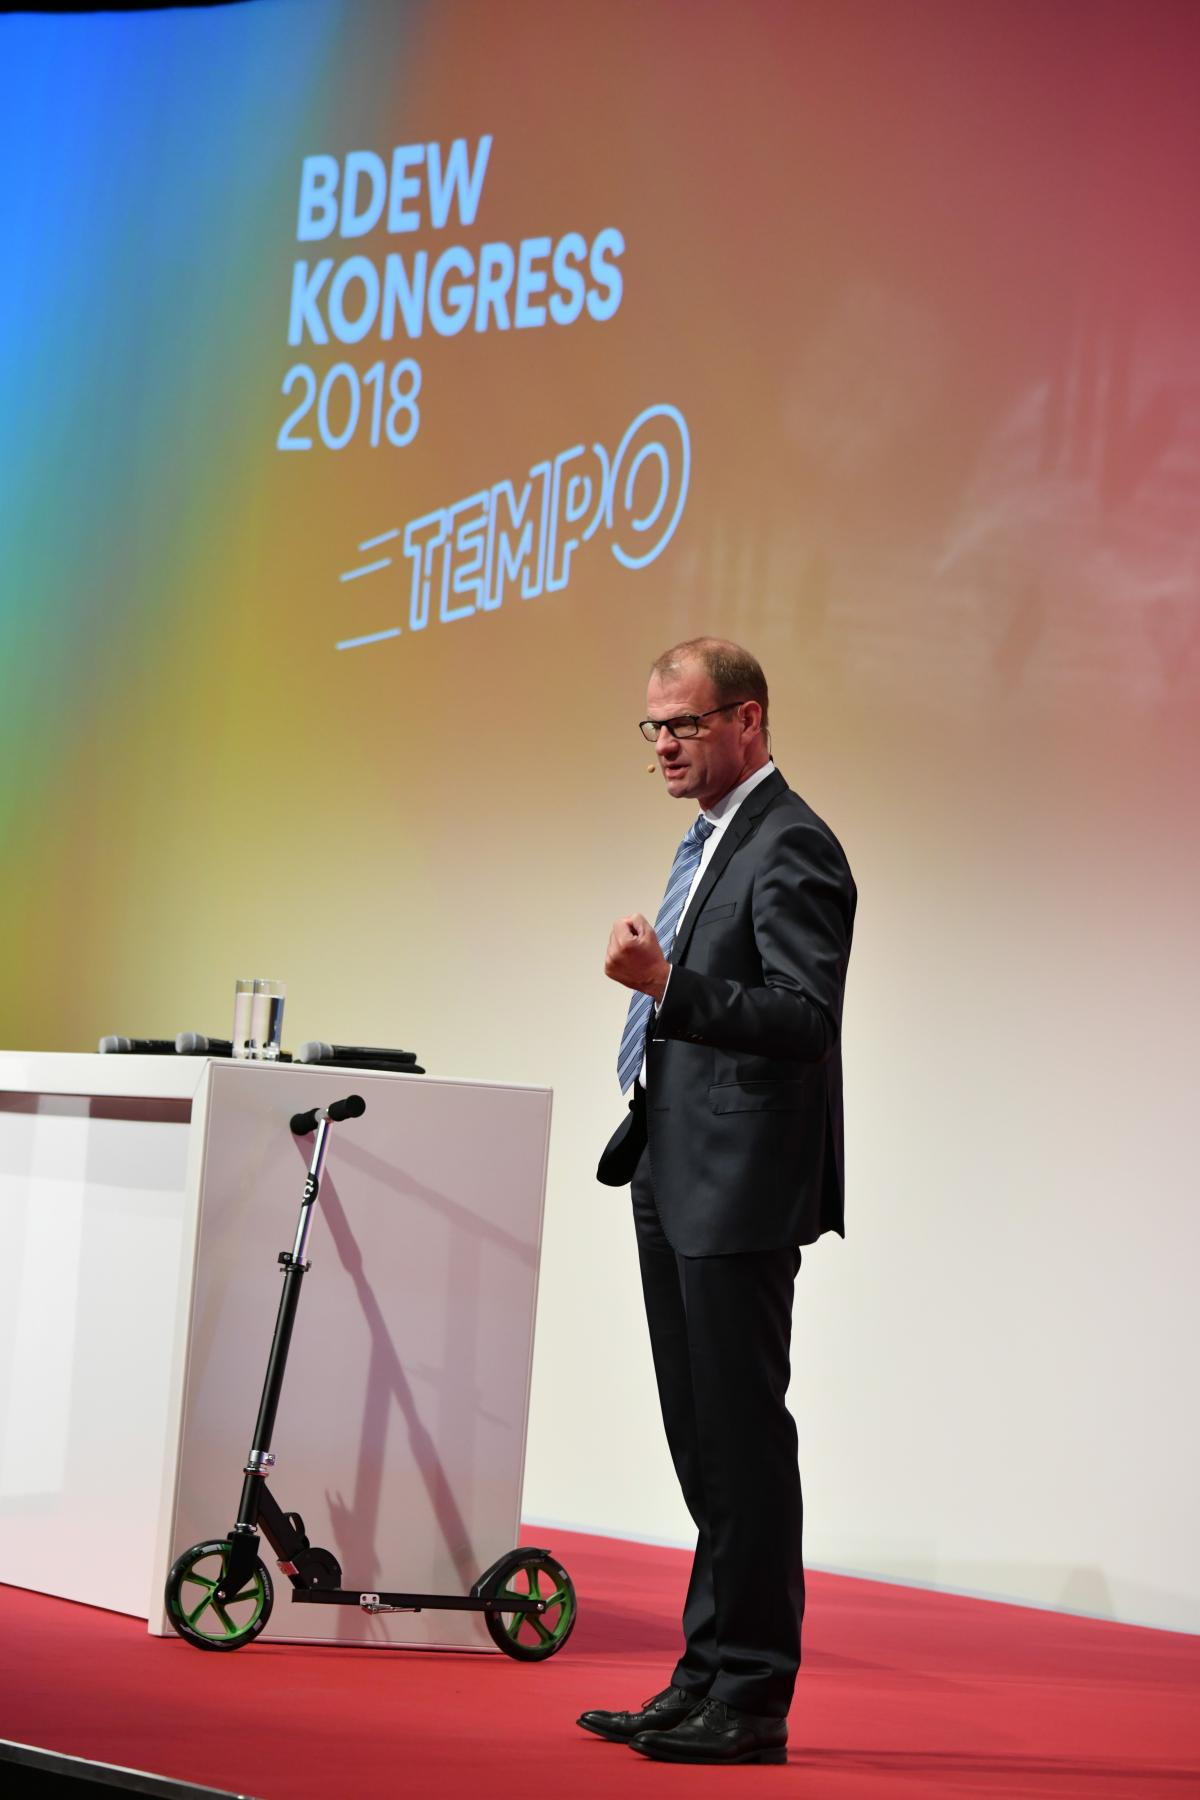 BDEW executive director Stefan Kapferer speaks at the BDEW congress 2018 in Berlin.